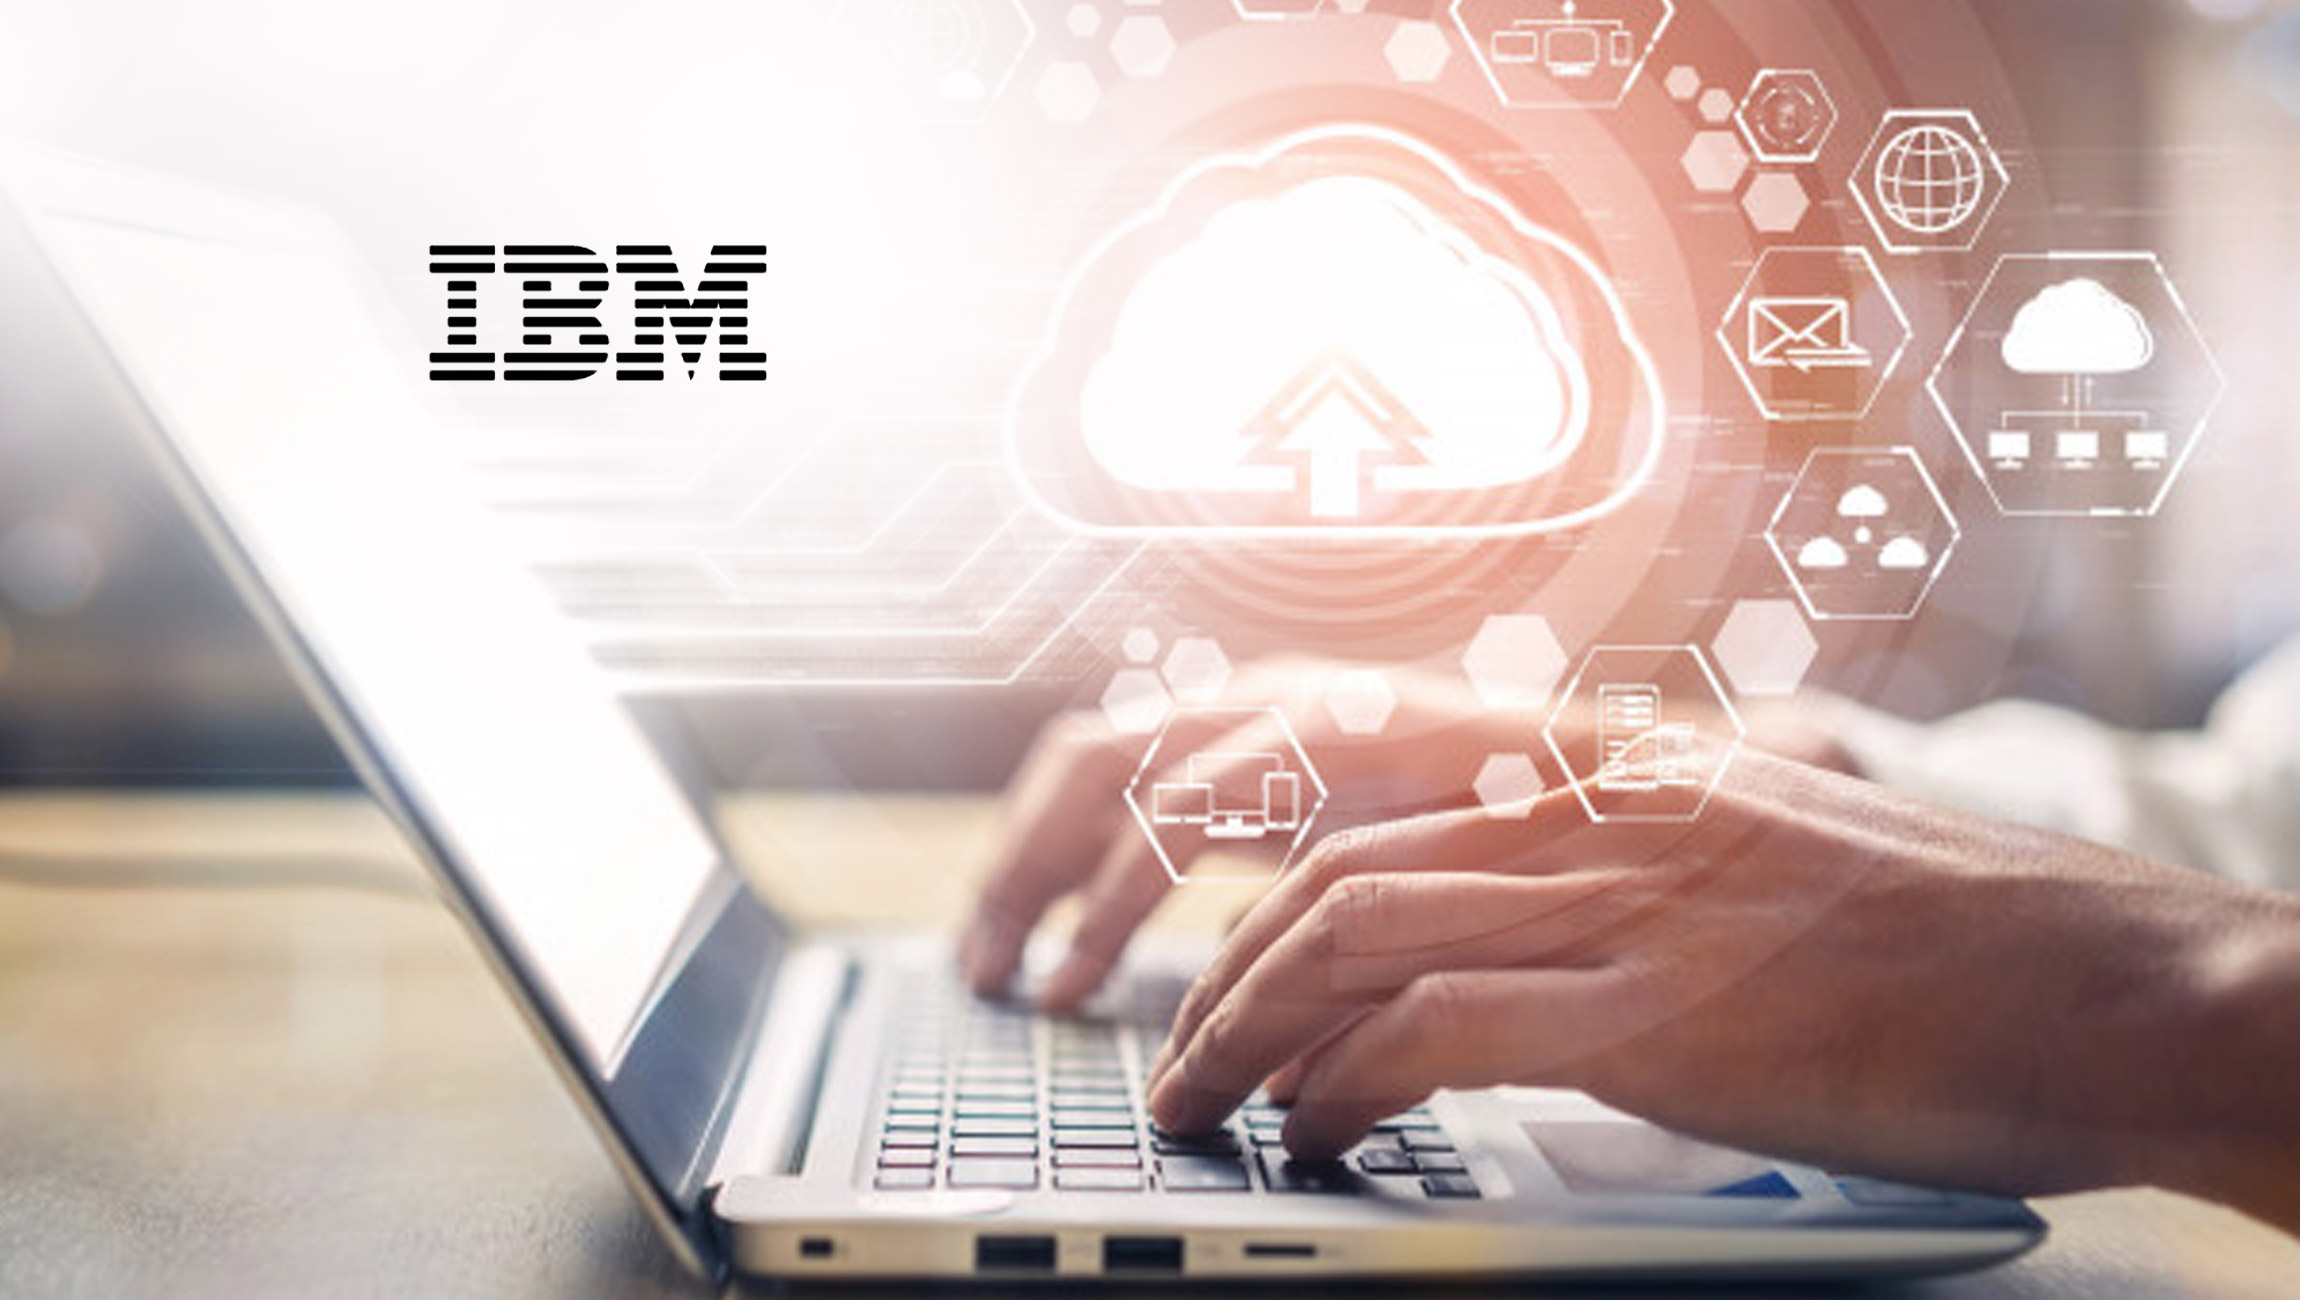 IBM Makes Resources Available to Small Business Owners At No Cost to Them